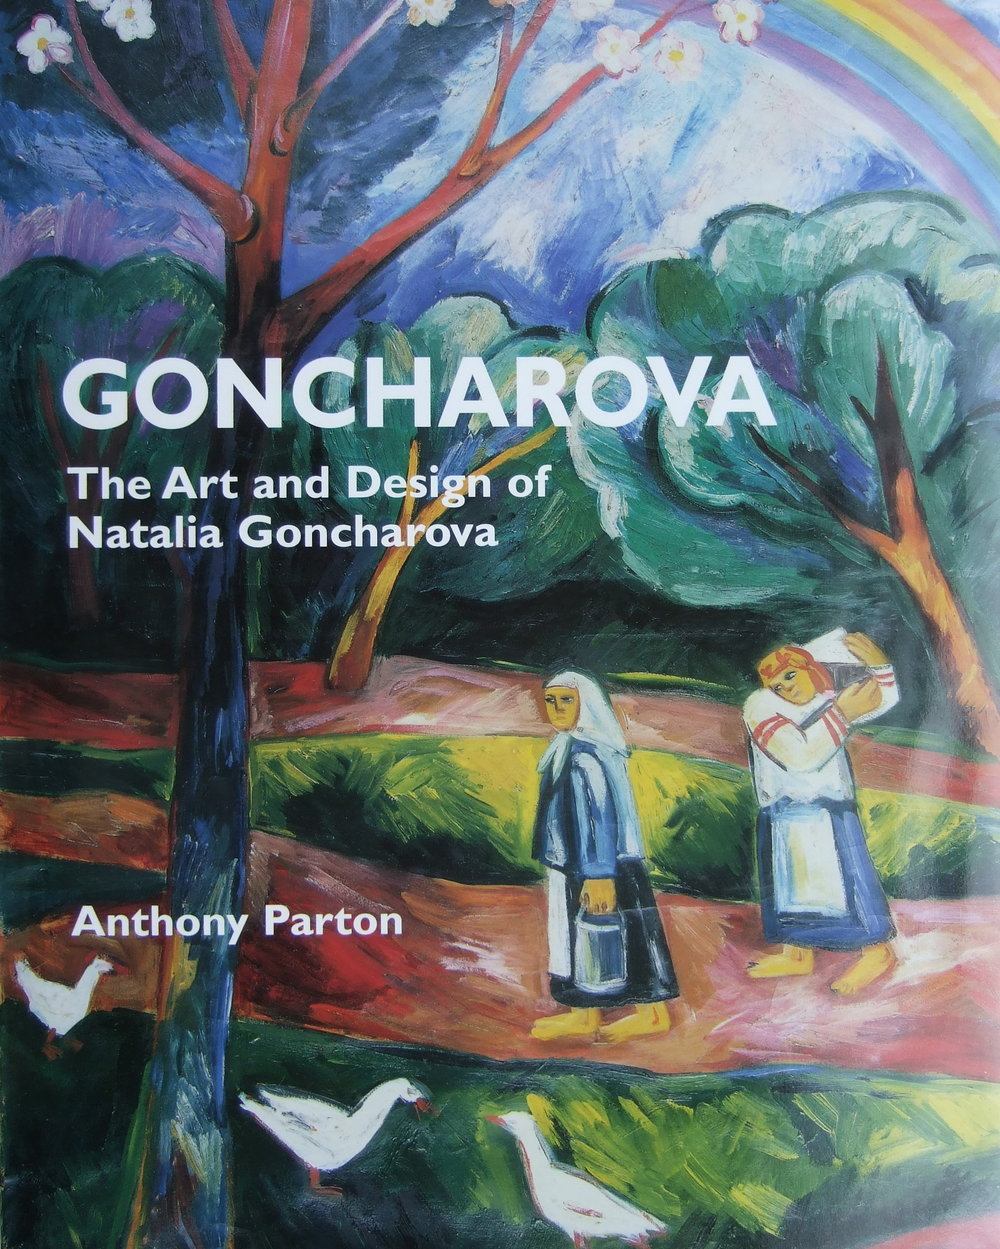 GONCHAROVA The Art and Design of Natalia Goncharova